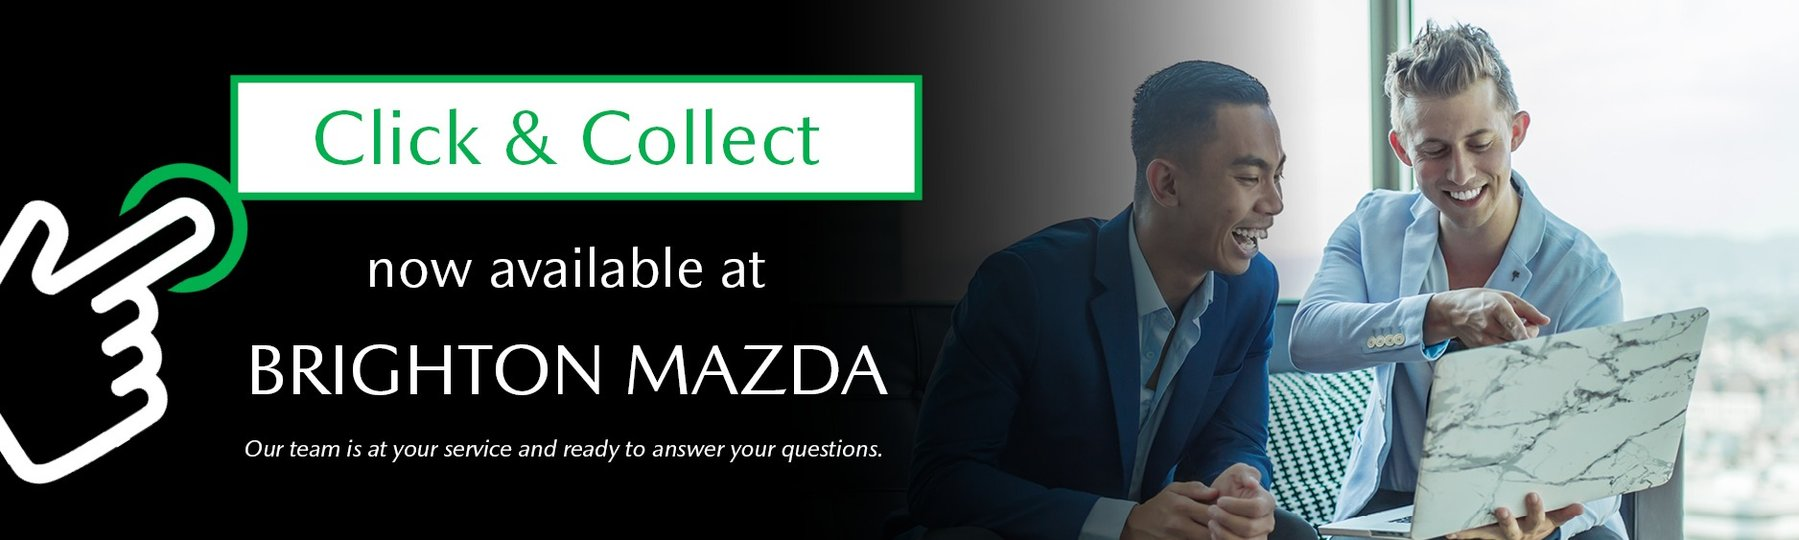 Click & Collect Available at Brighton Mazda